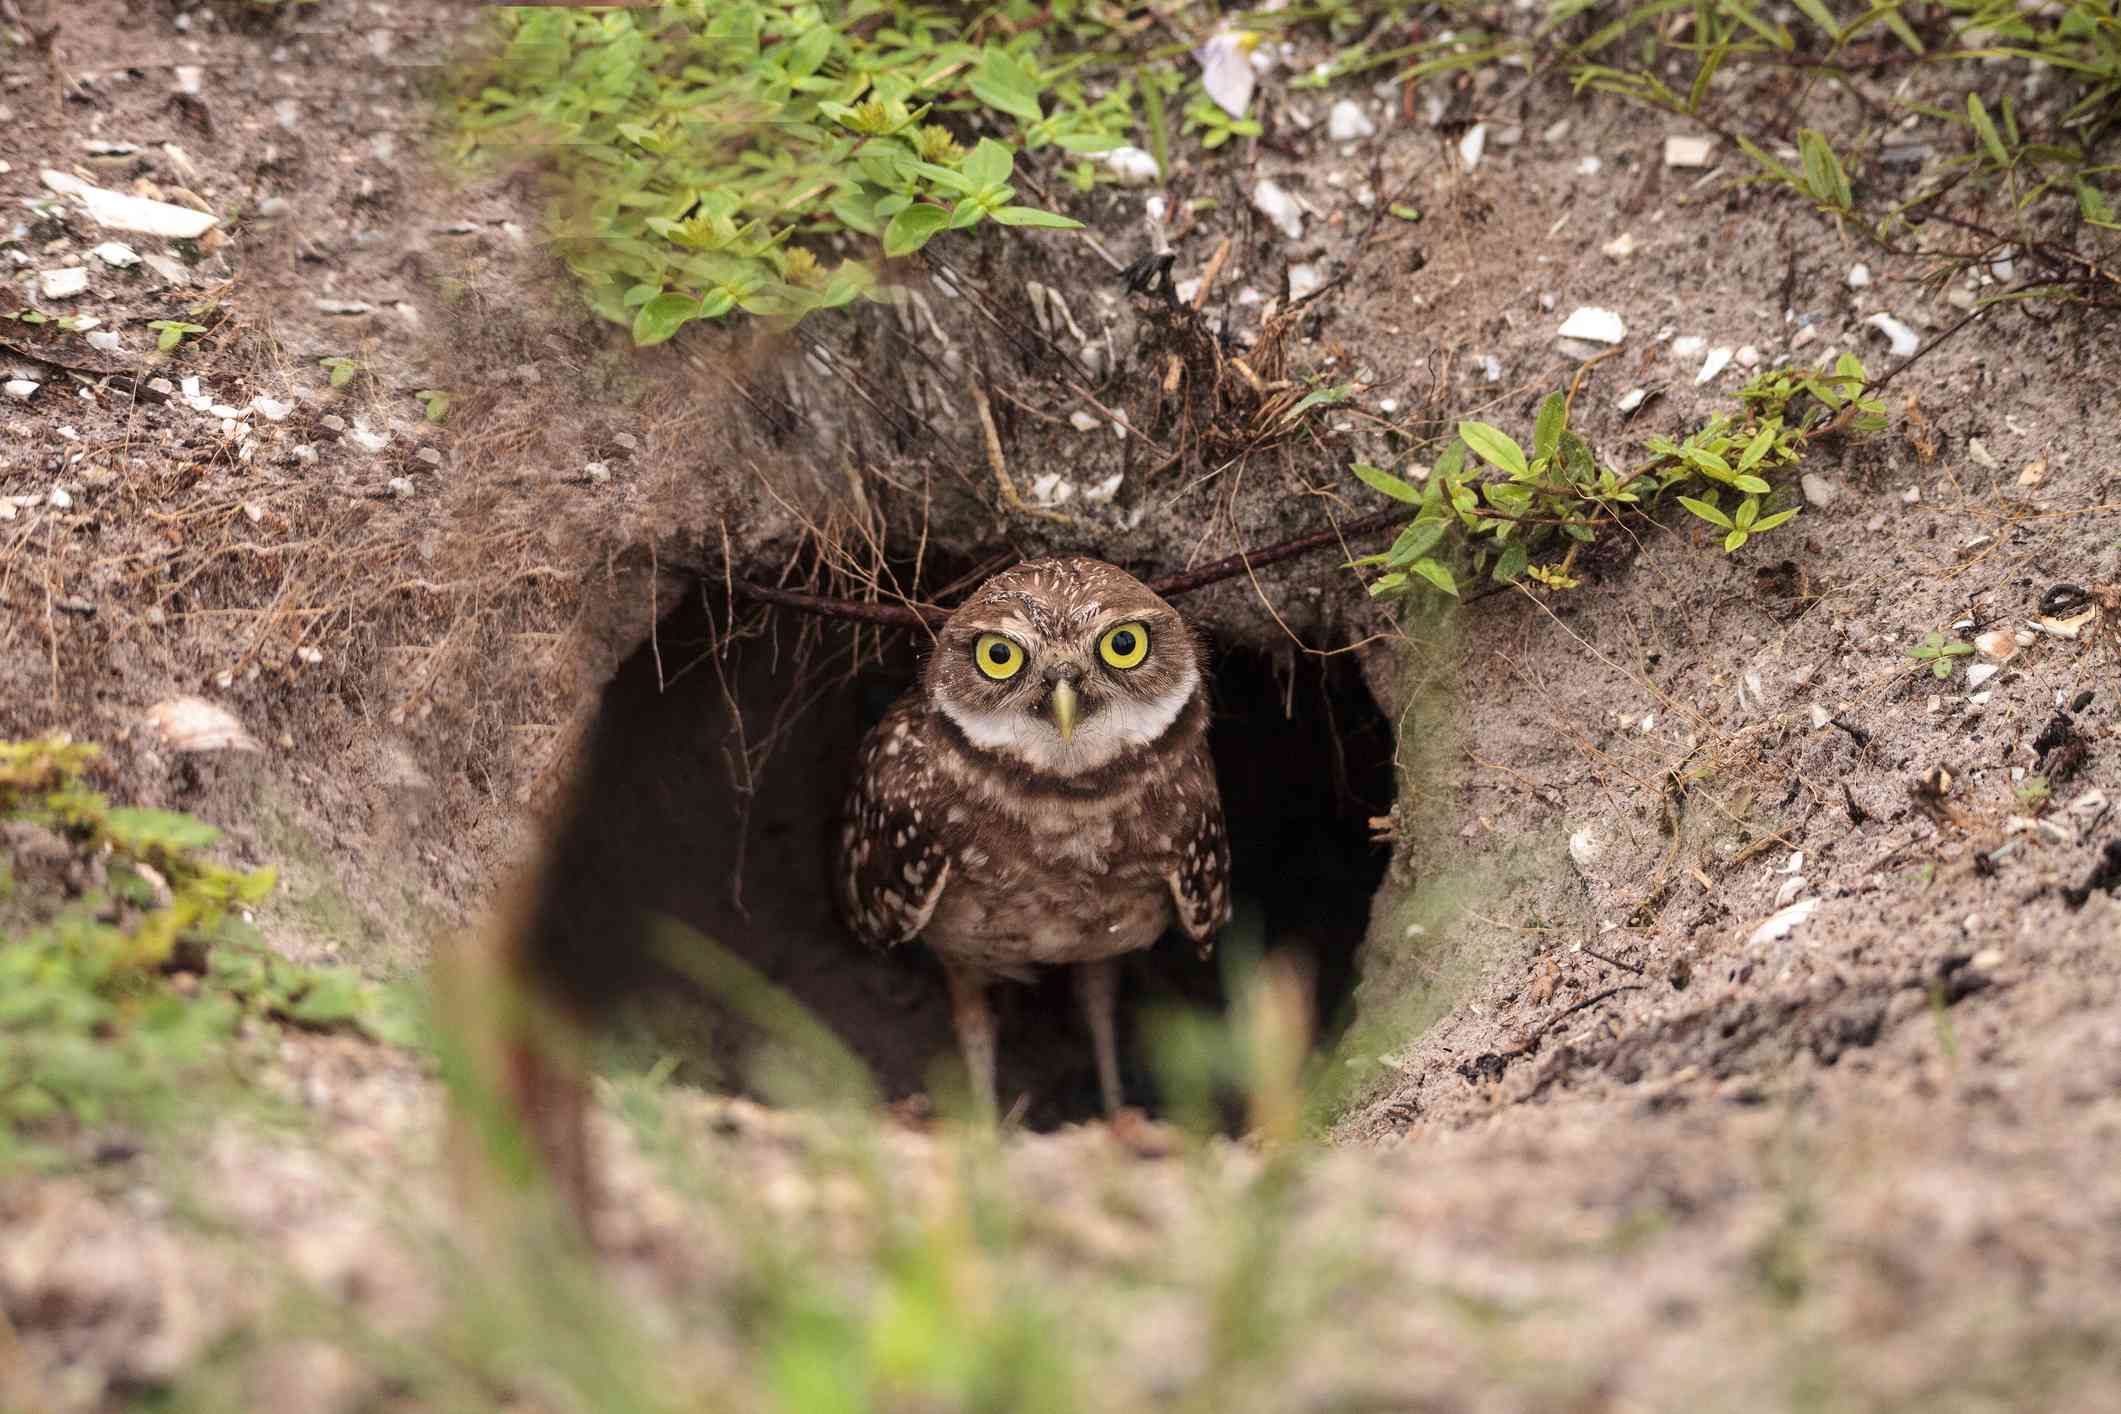 baby burrowing owl standing outside its burrow, facing camera with big yellow eyes